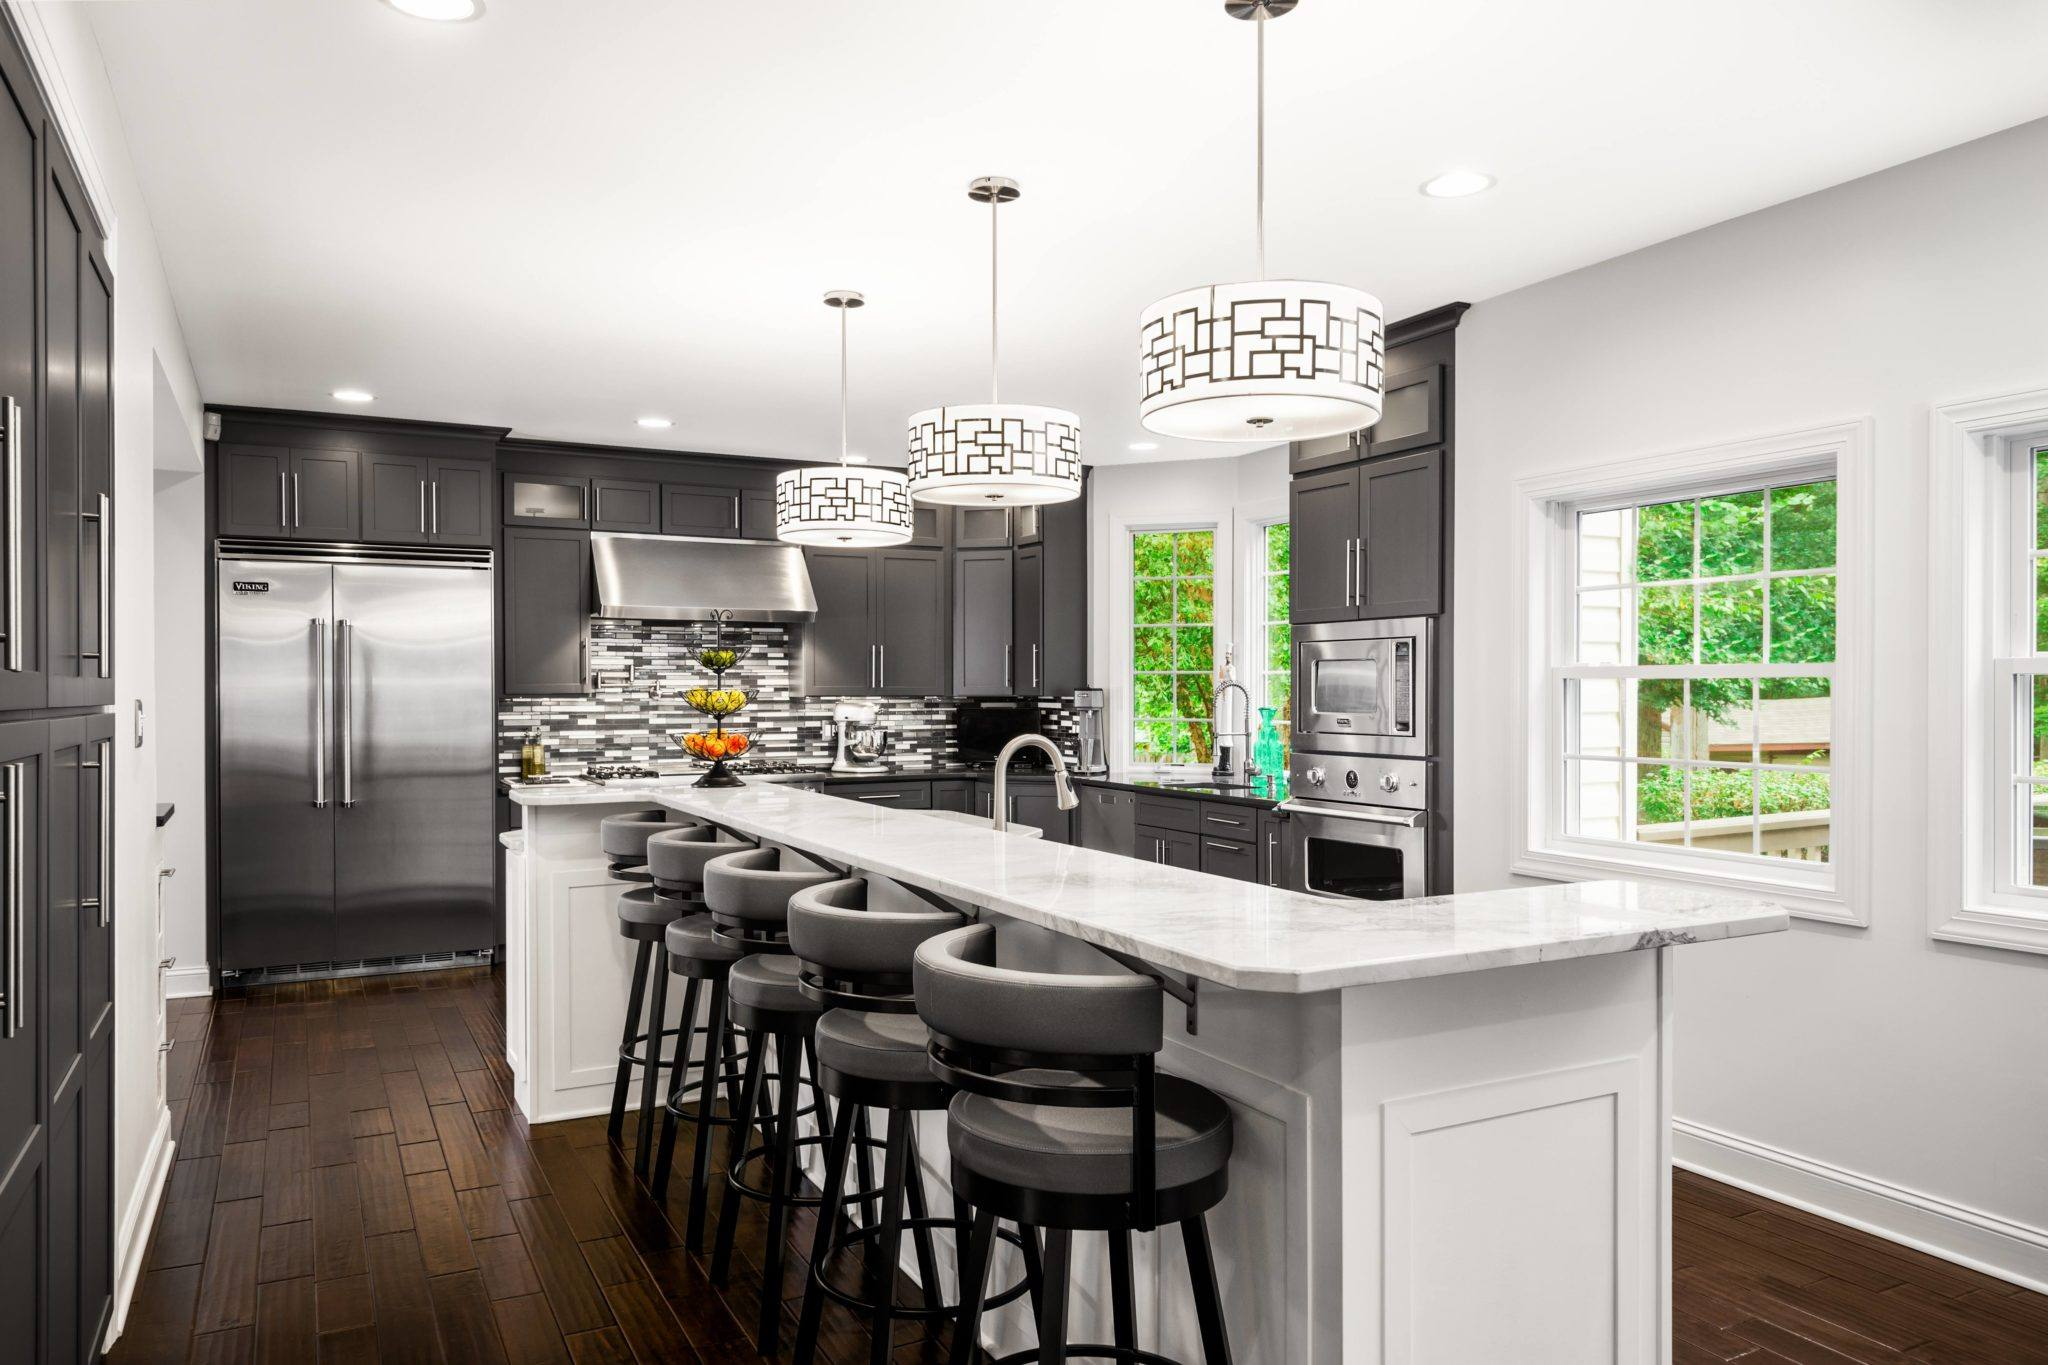 ten signs bad kitchen designer kitchen designer So many kitchen designers are less than competent that I thought I d give customers a cheat sheet to help them evaluate the designer they might be working